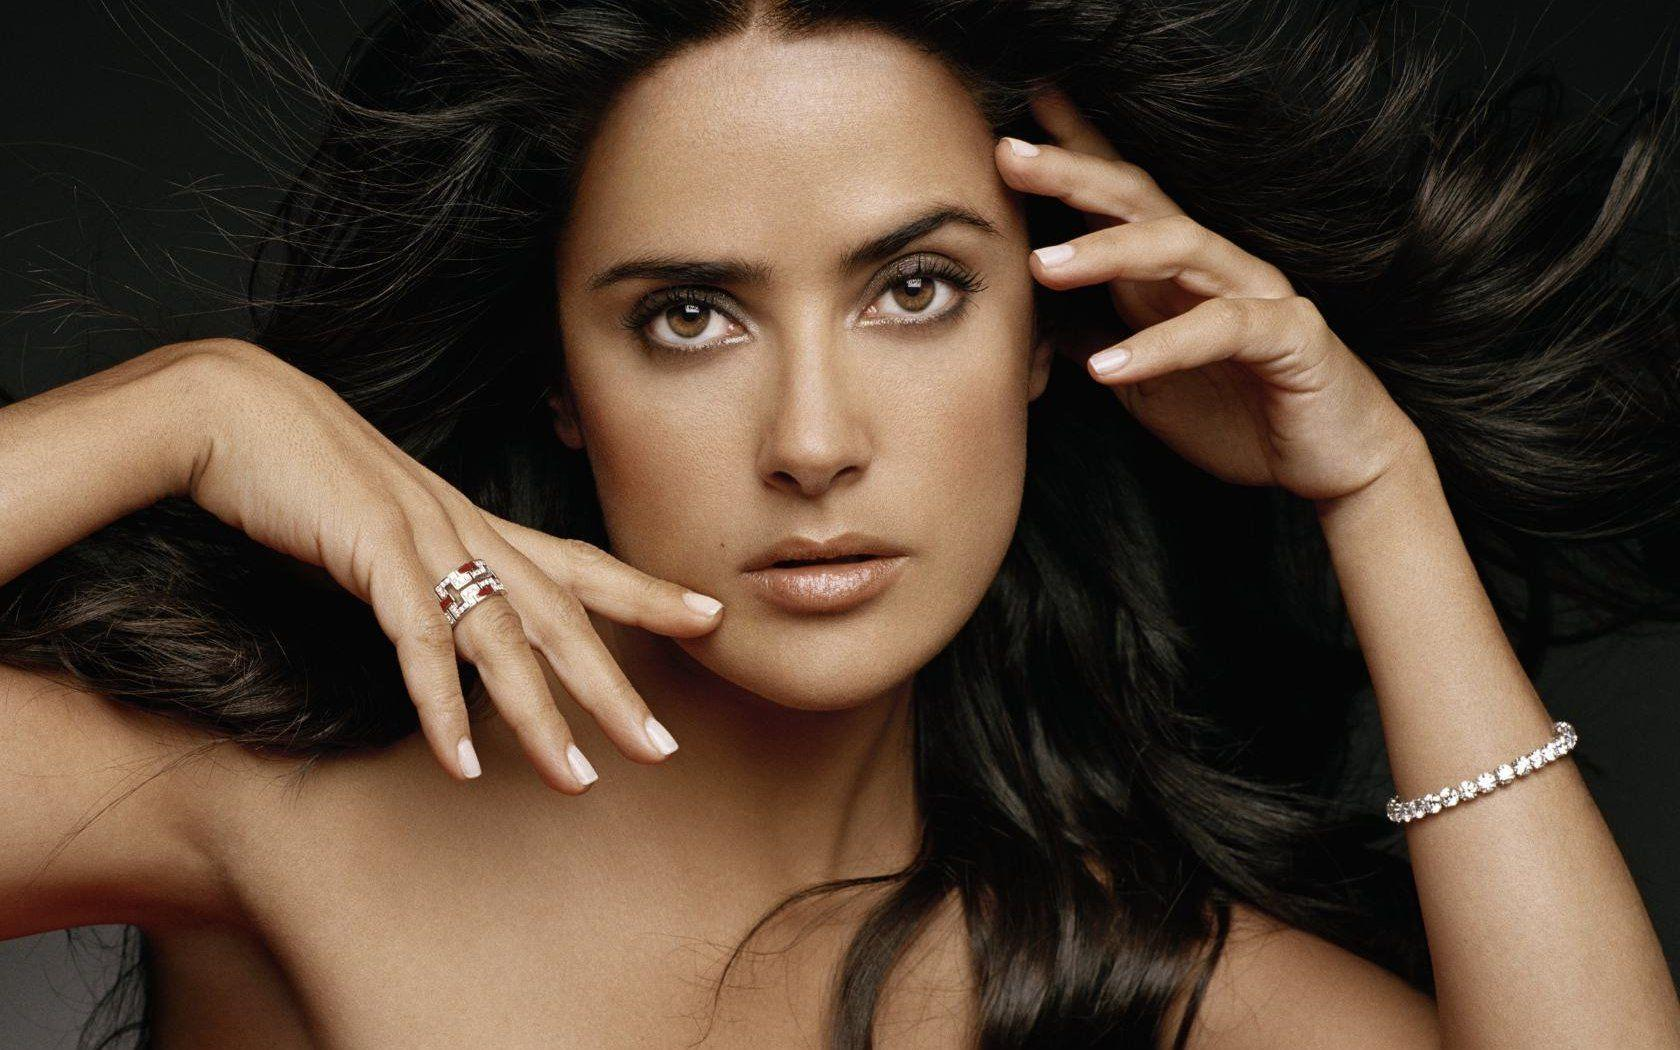 salma-hayek-wide-wallpaper | dellasandman